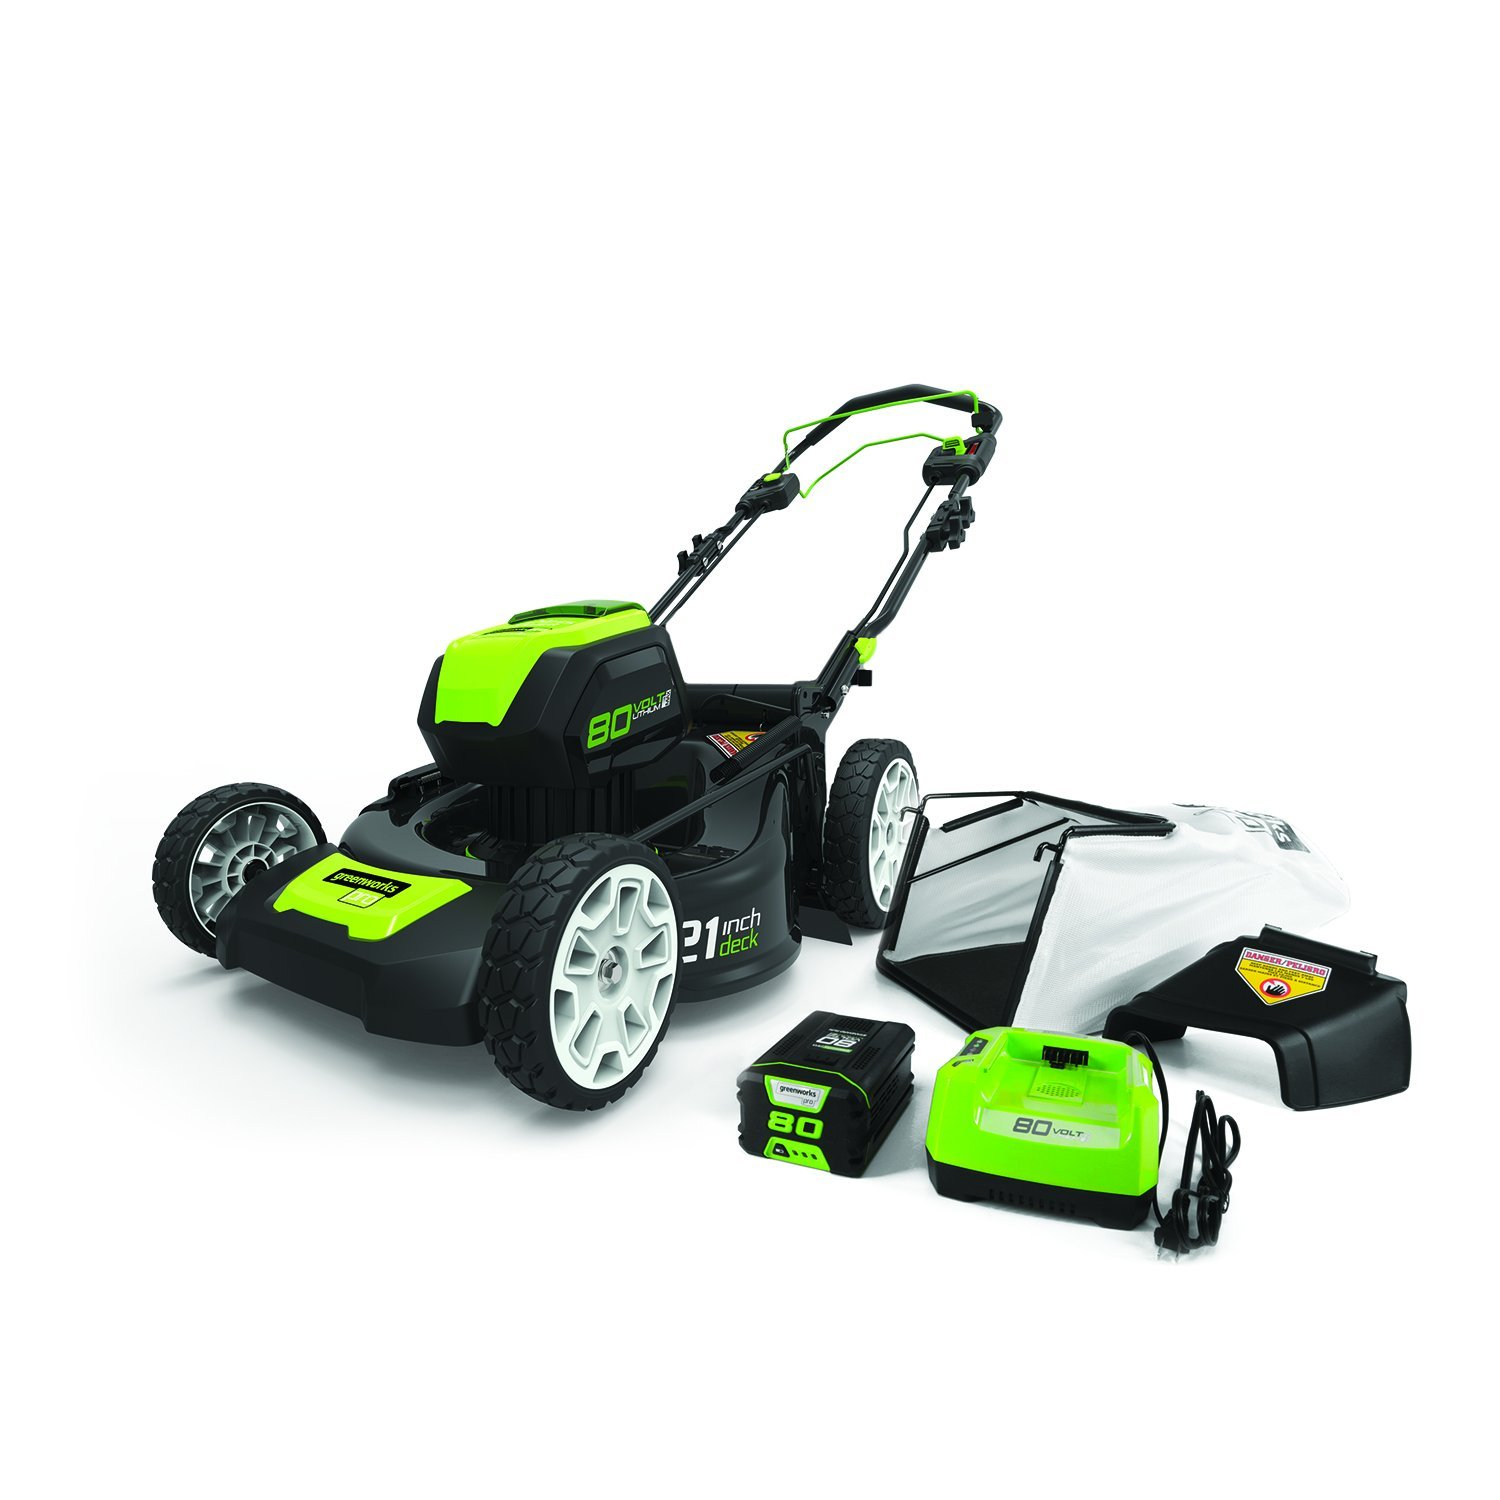 GreenWorks Pro 80V 21-Inch Self-Propelled Cordless Lawn Mower